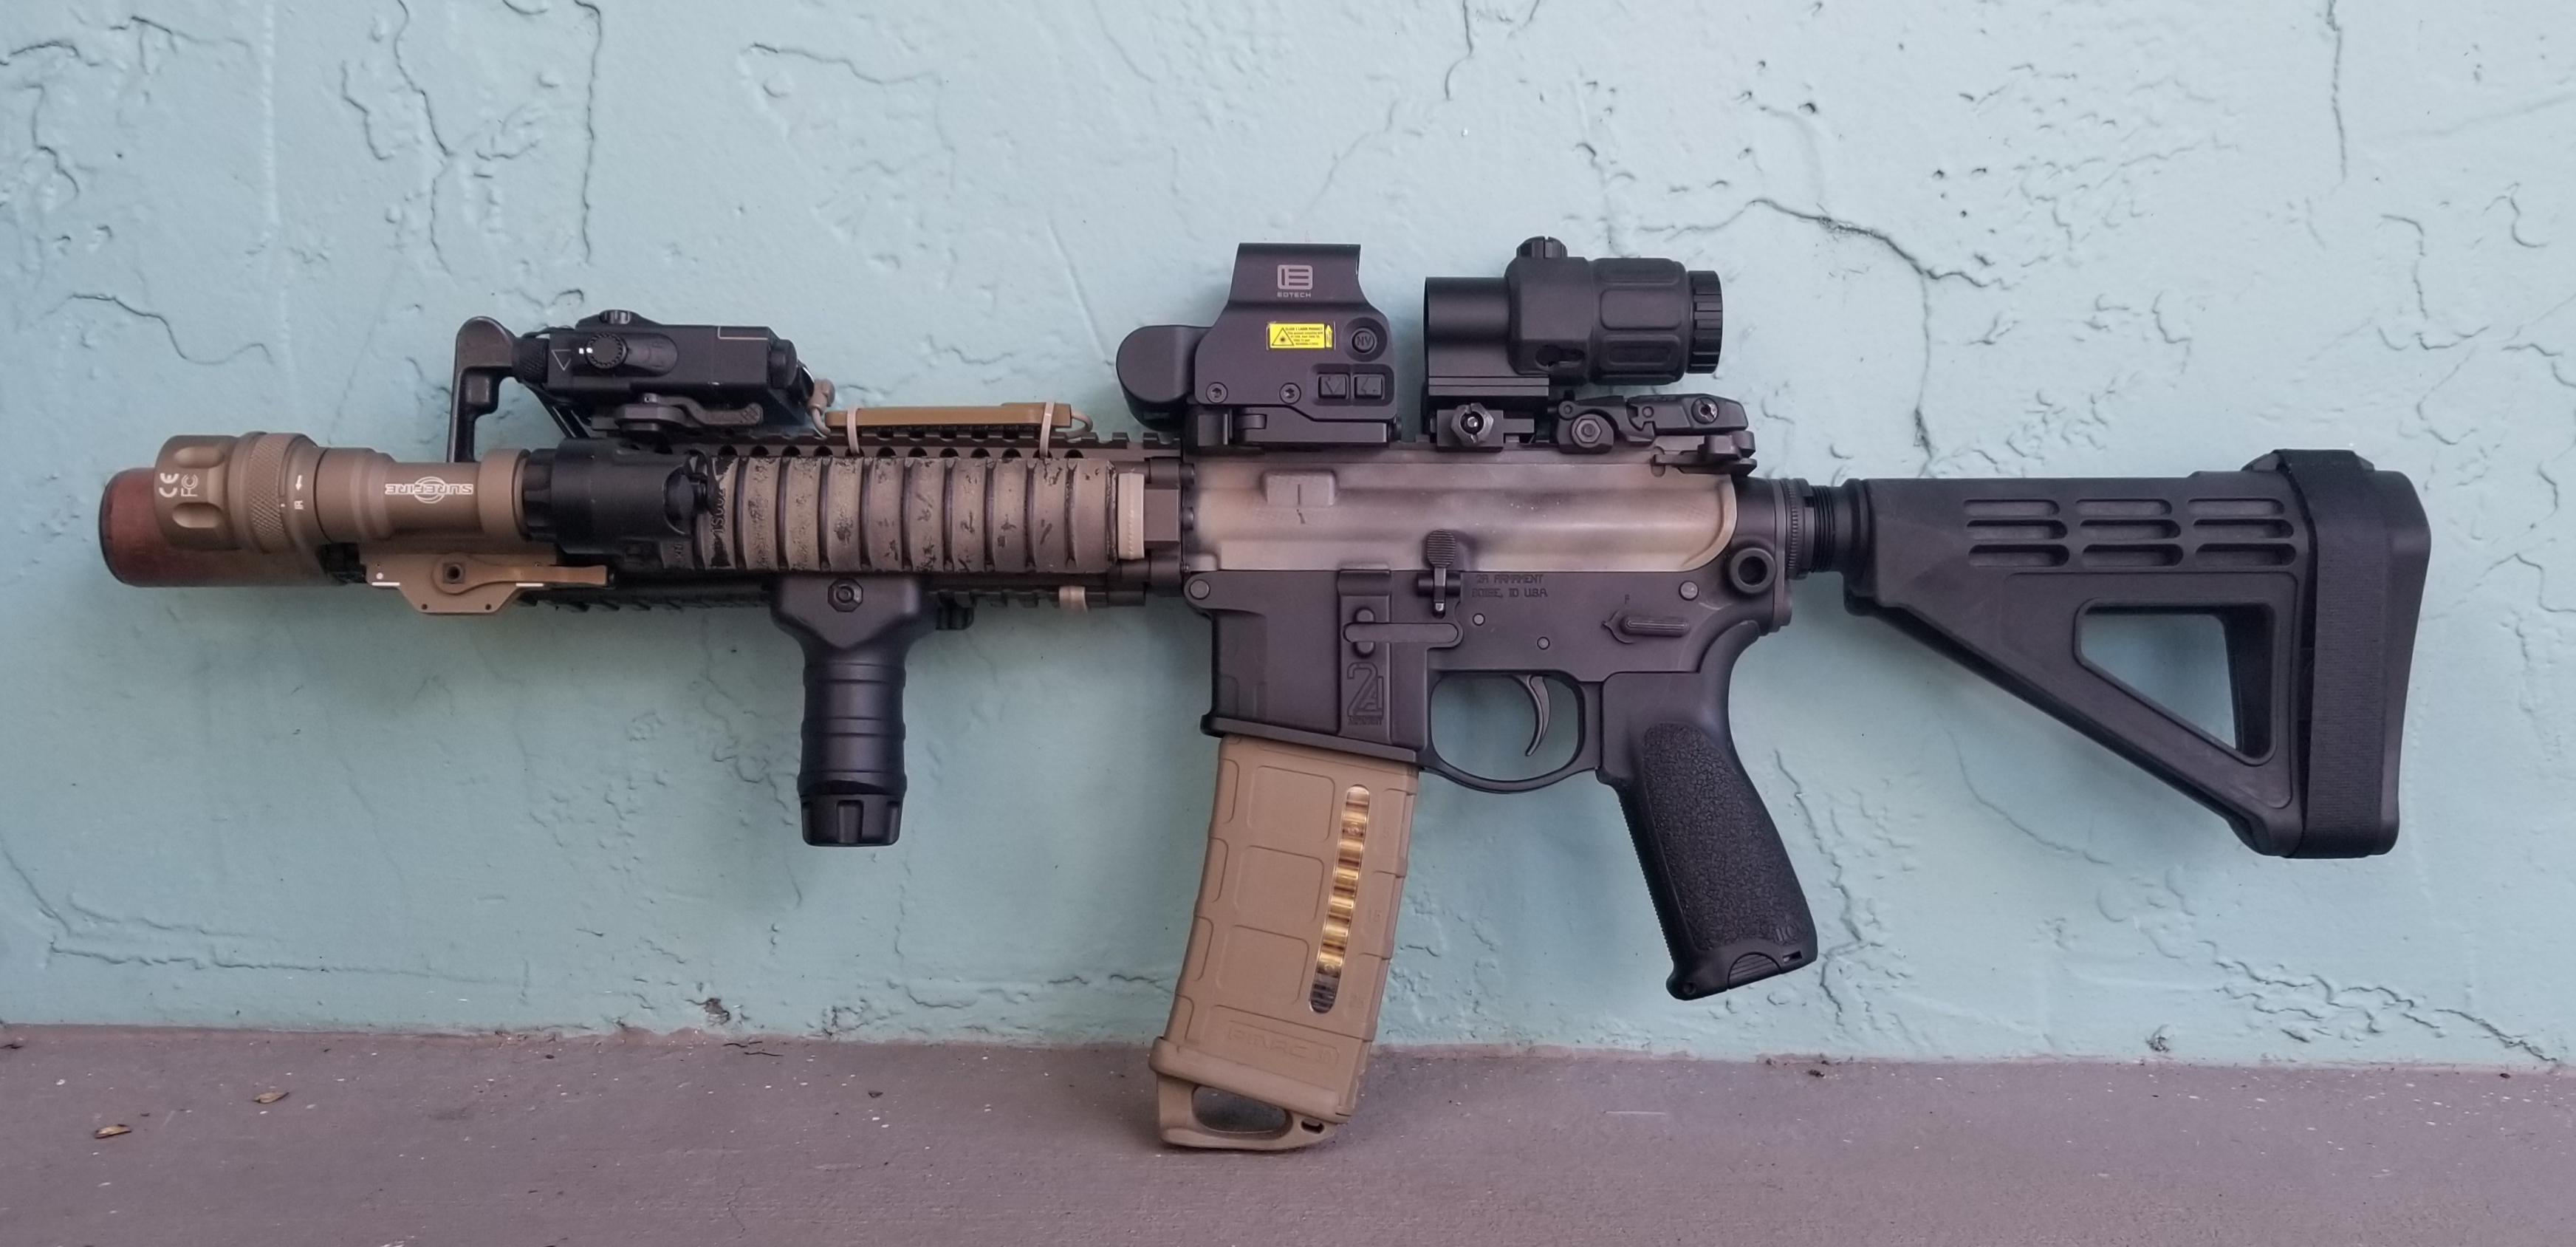 My Decked-out Castle Defender Firearm : ar15